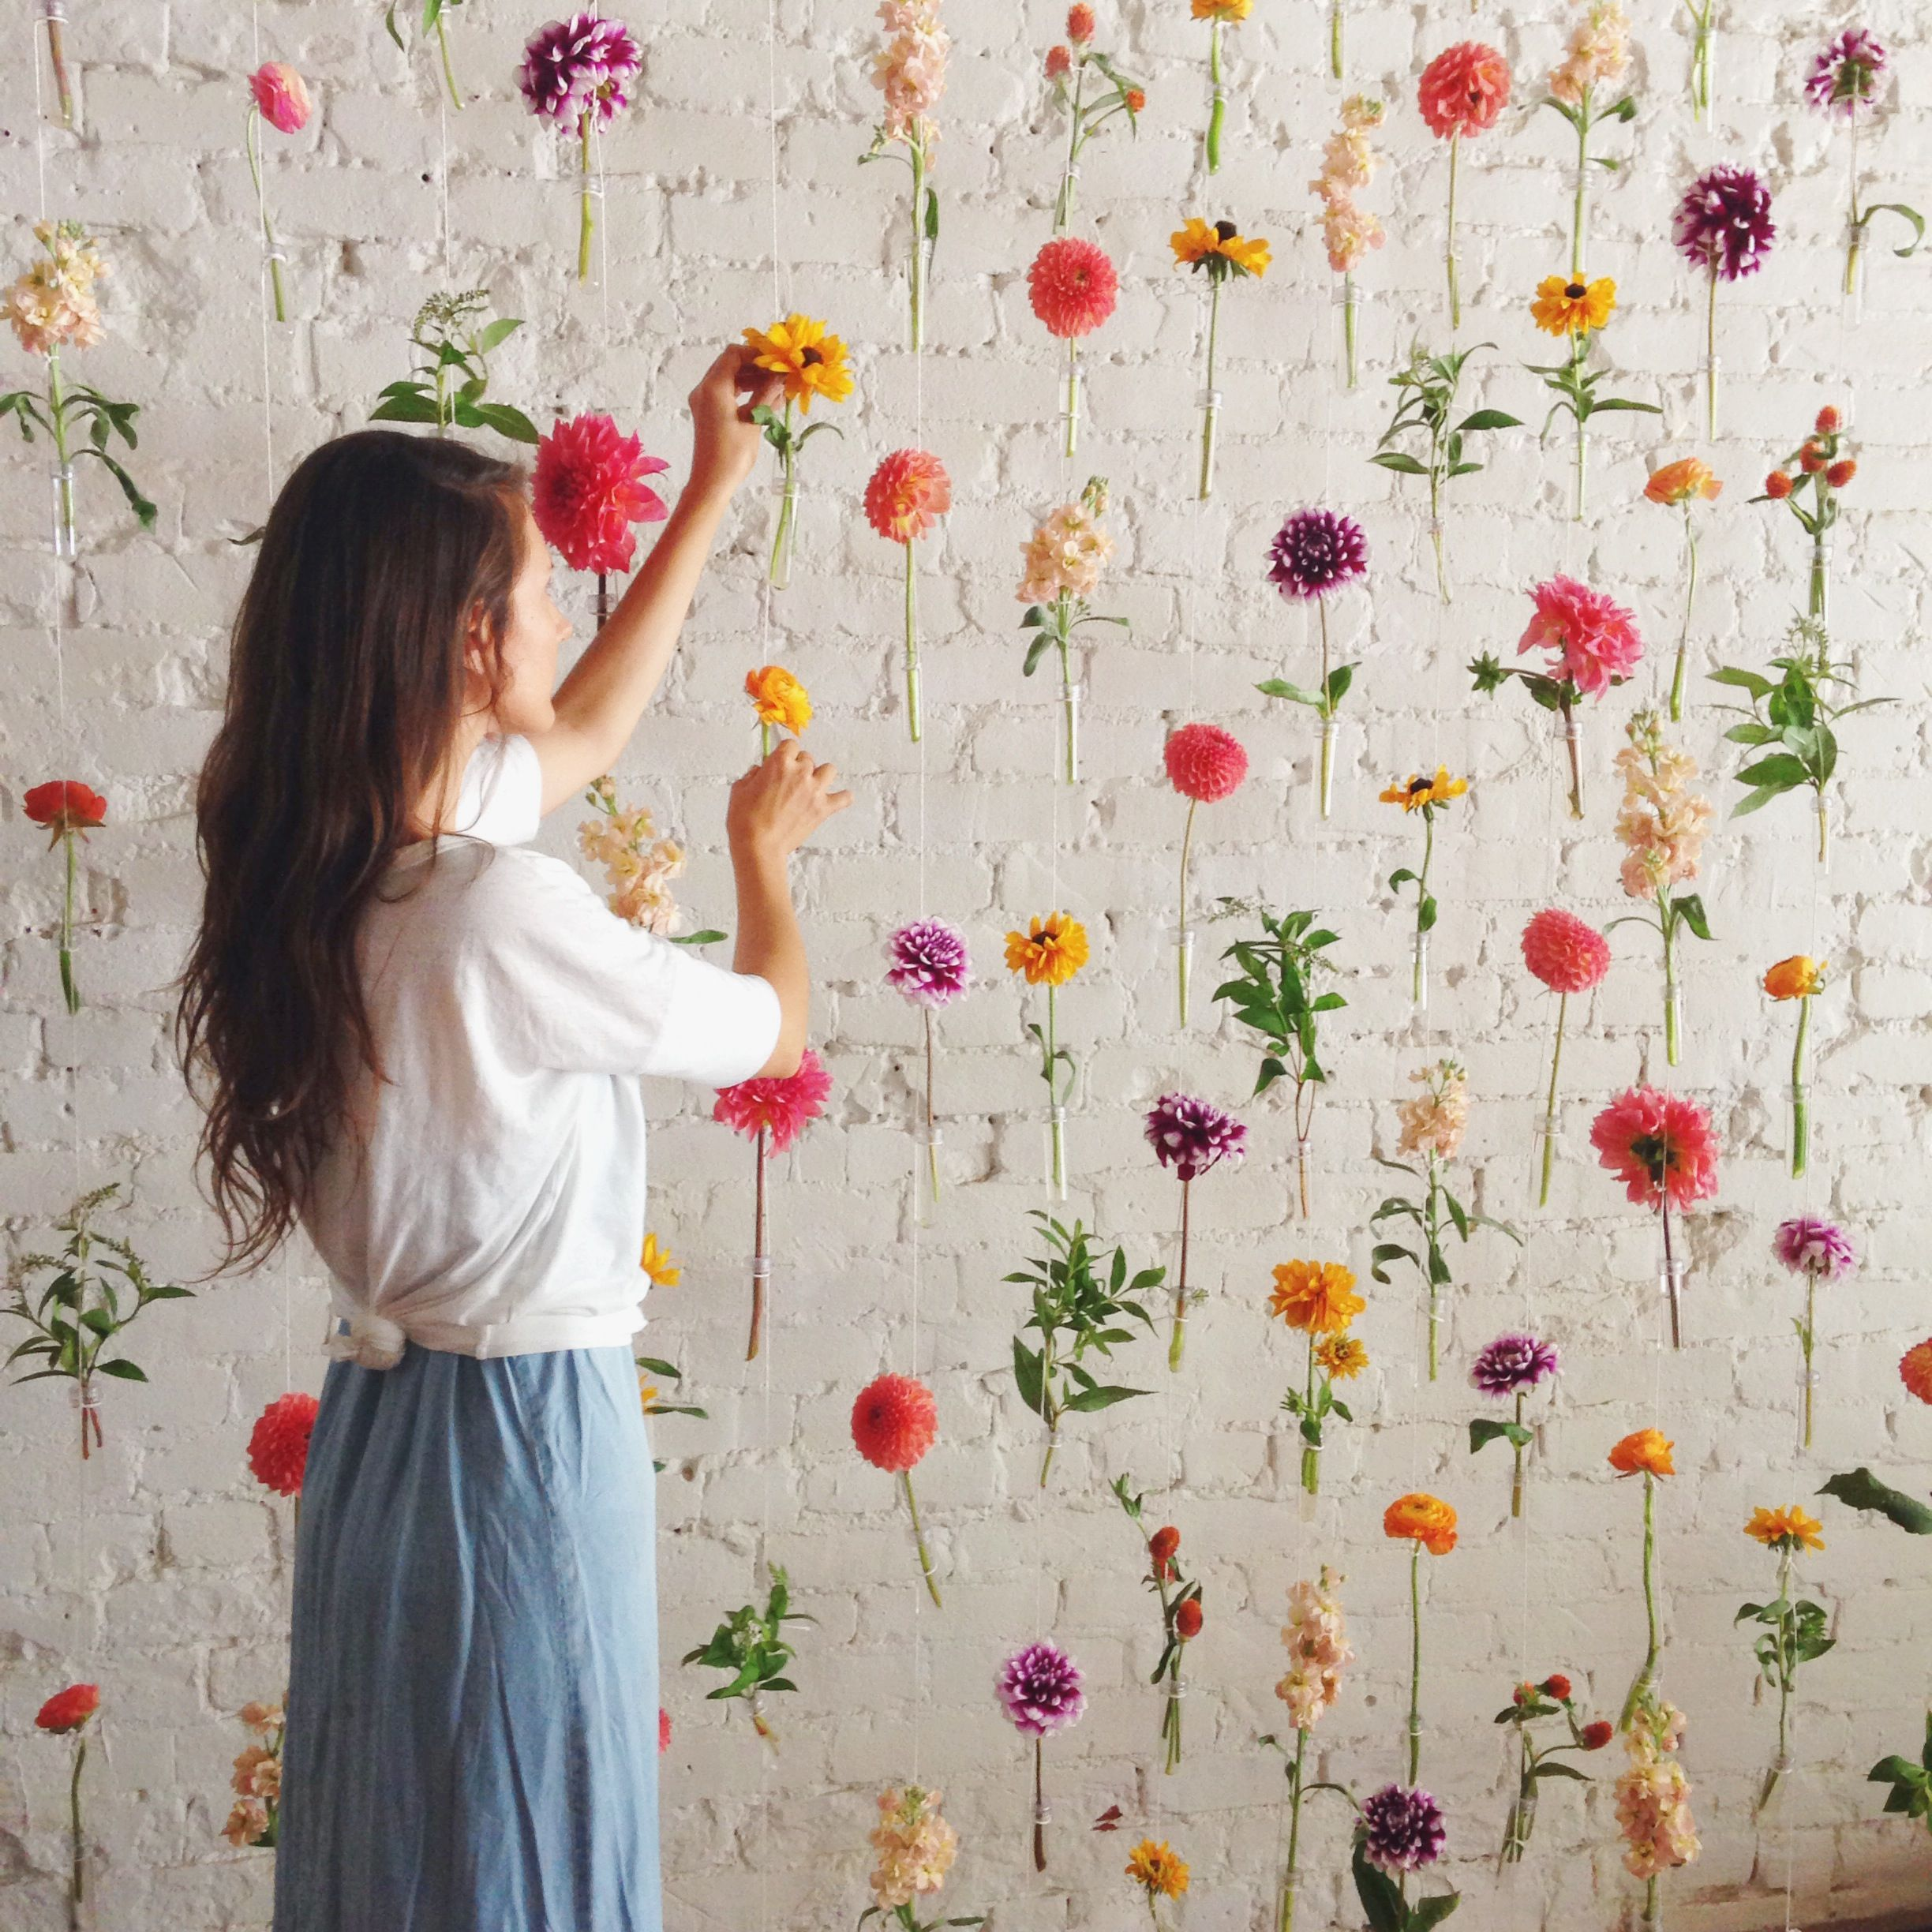 Diy Wall Draping For Weddings That Meet Interesting Decors: Fuel Your Feed: 11 Uplifting Artists To Follow On